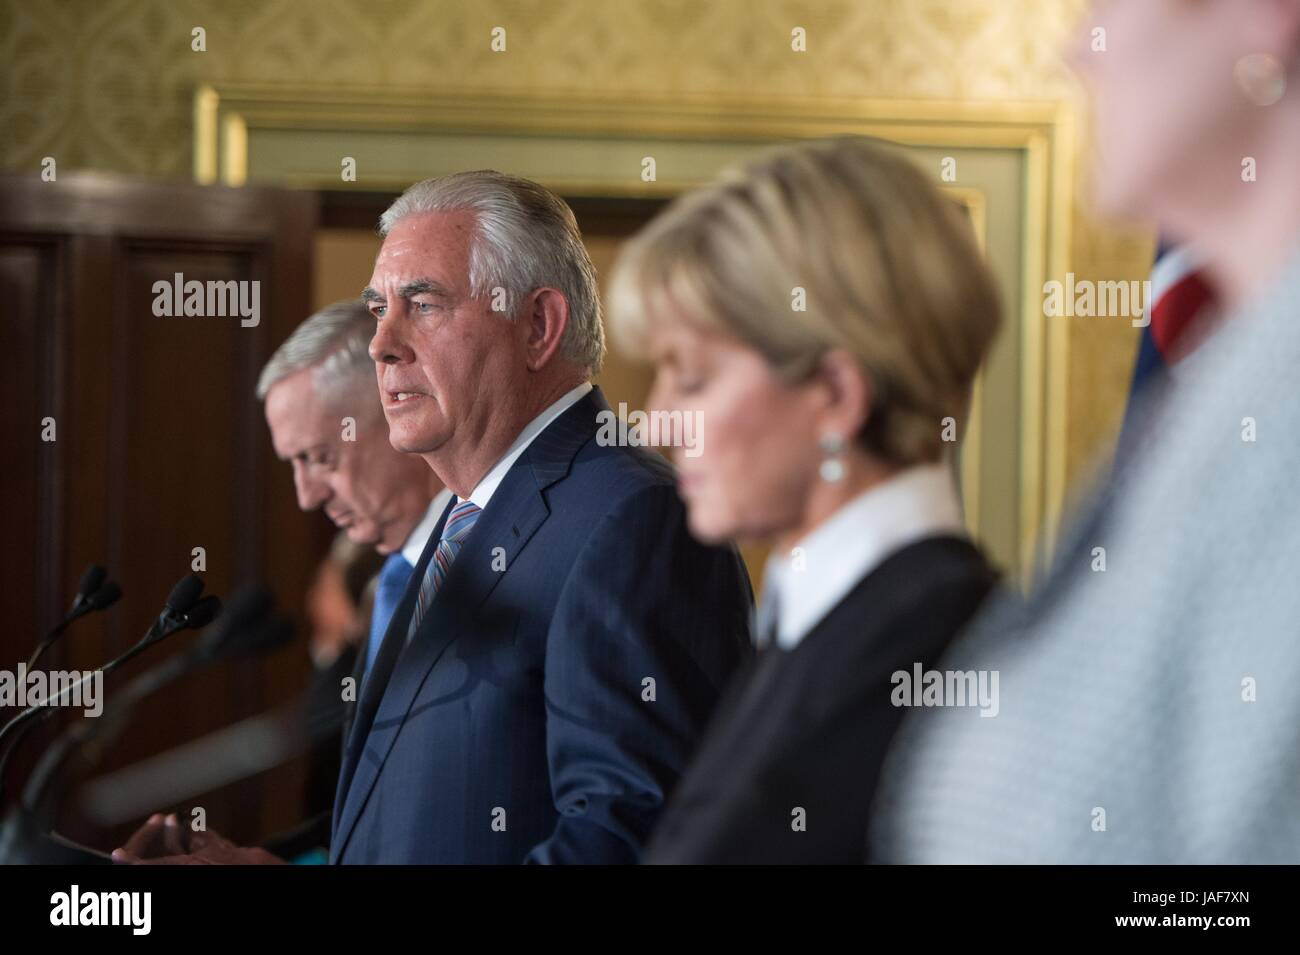 U.S. Secretary of State Rex Tillerson listens to a reporters question during a joint press conference at the NSW - Stock Image